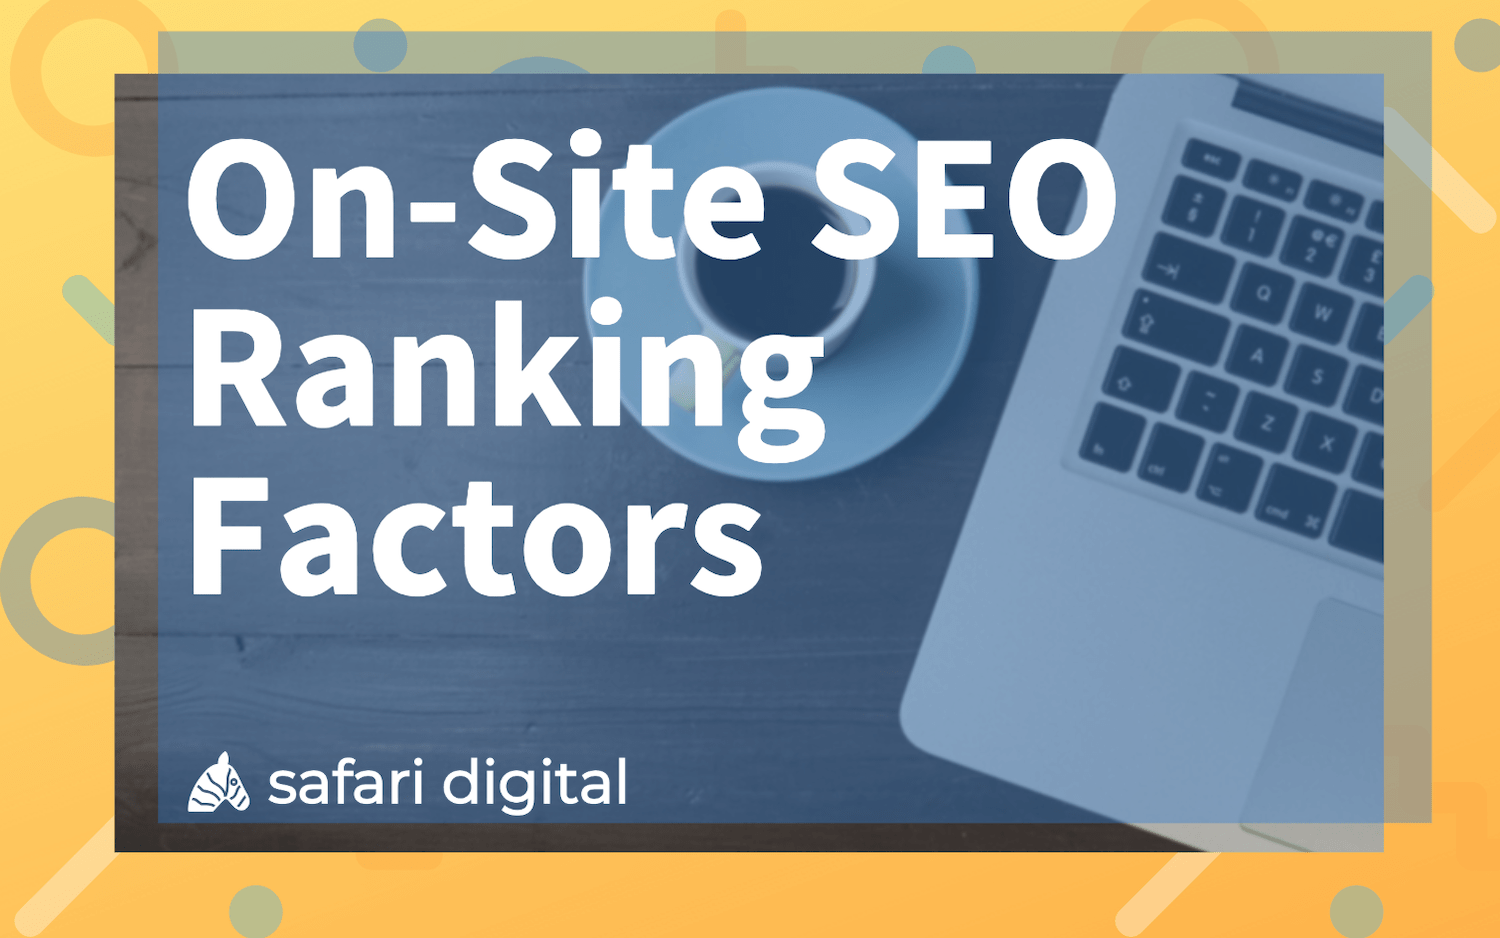 on-site SEO ranking factors banner image Large